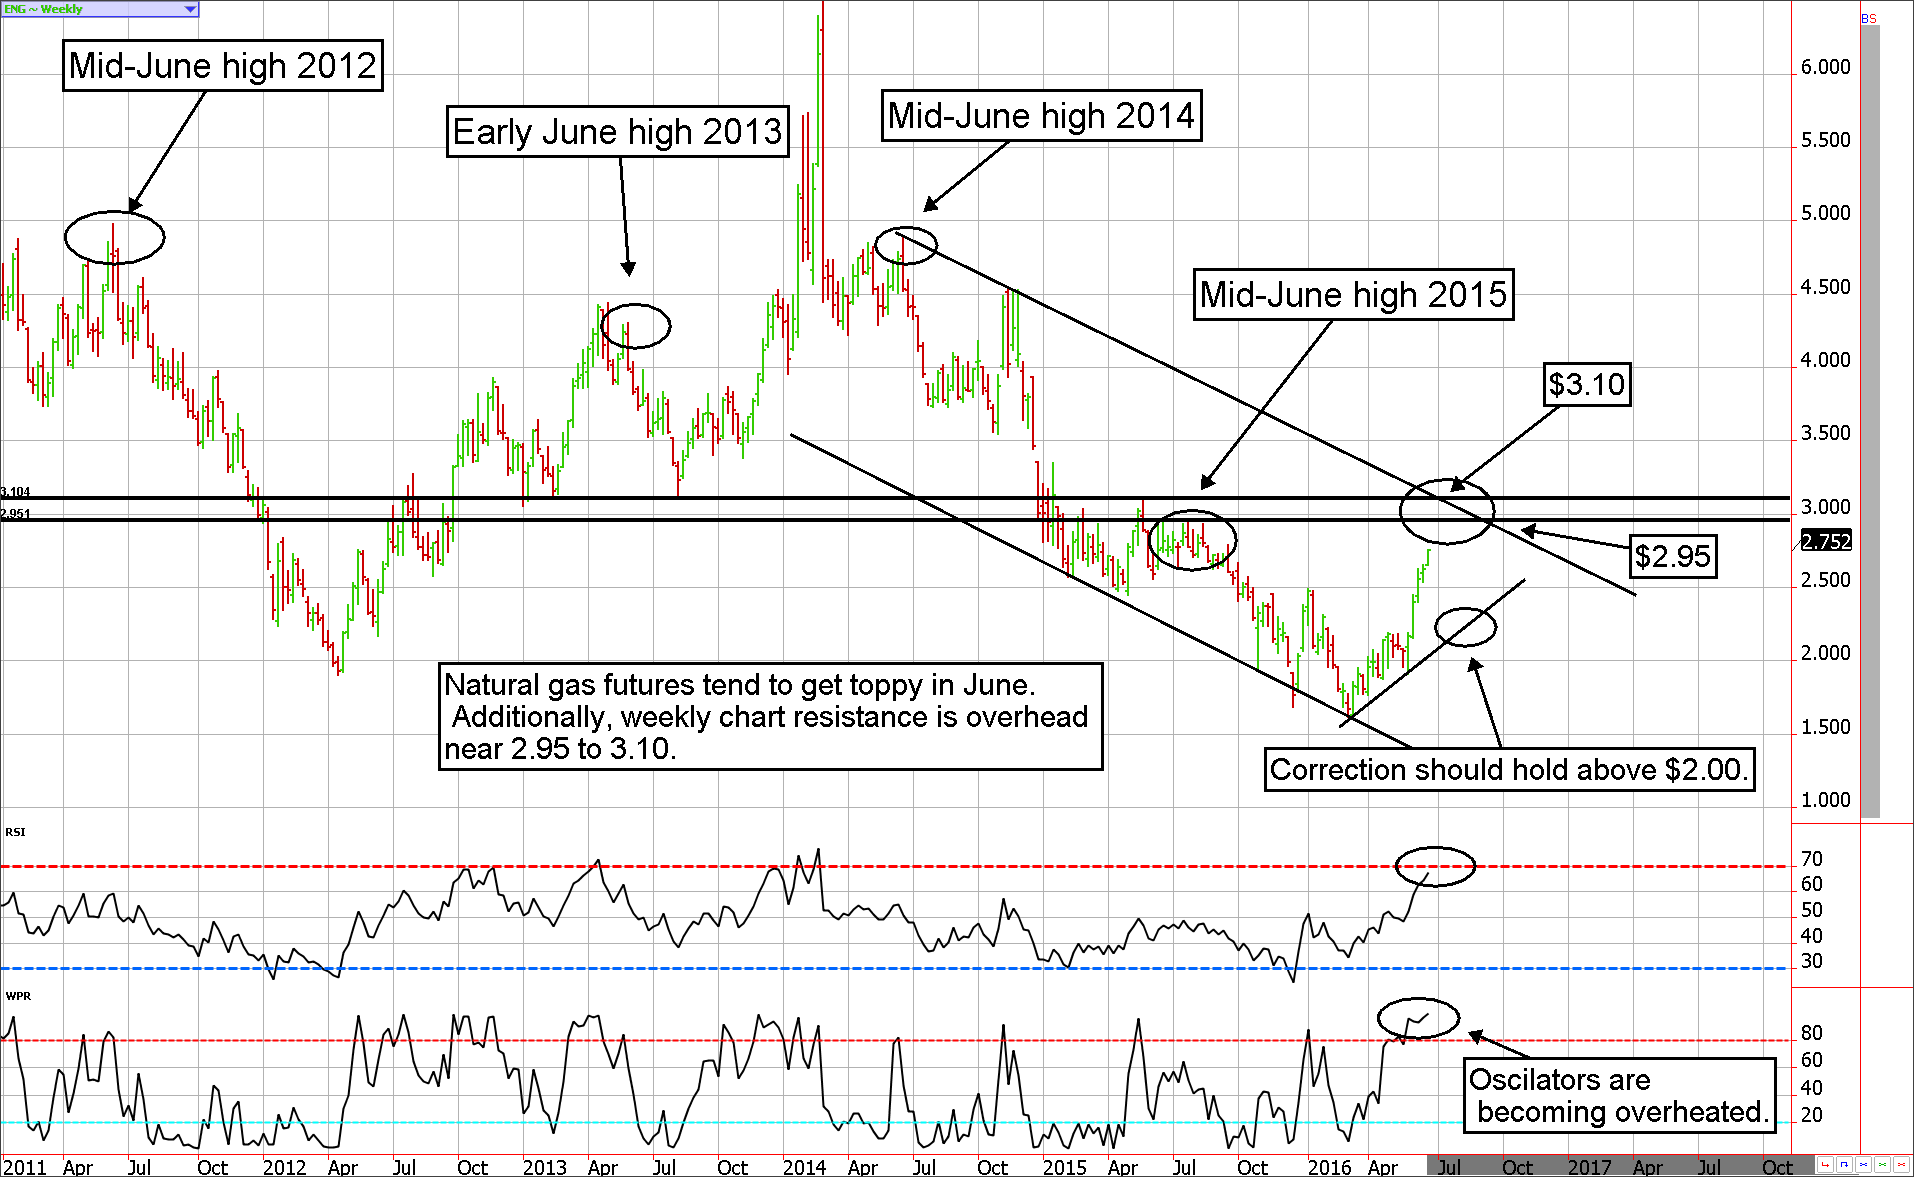 Natural Gas Futures tend to make mid-June Highs